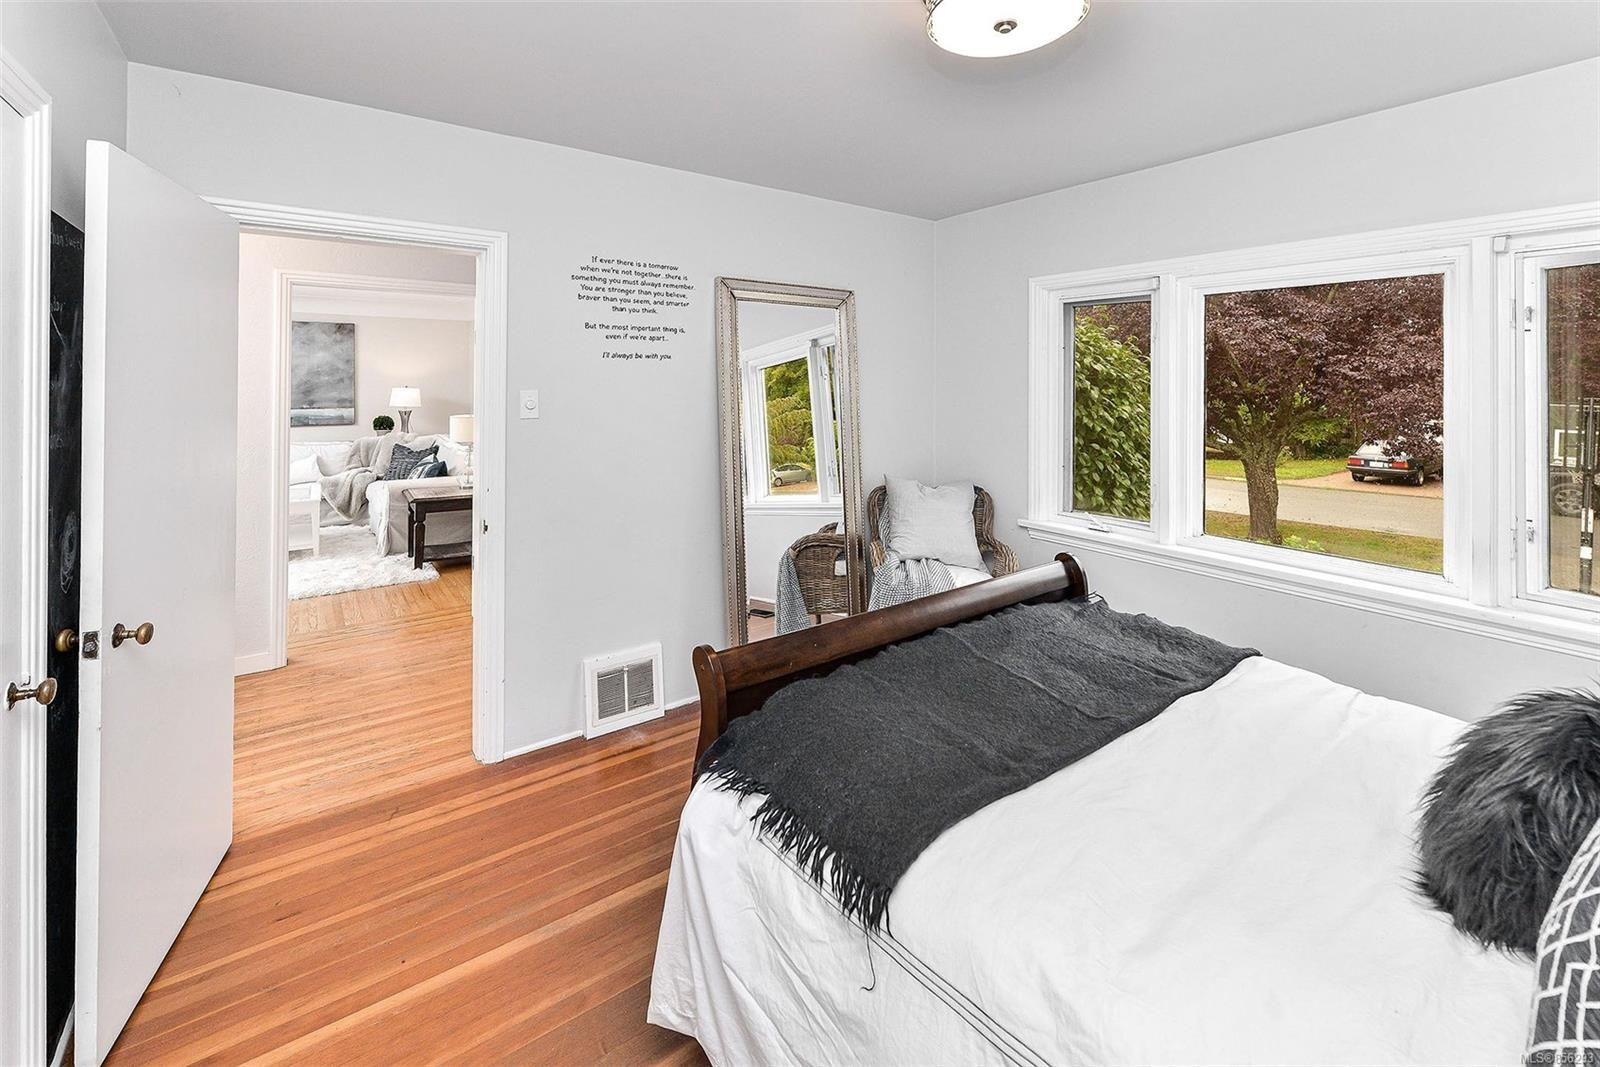 Photo 21: Photos: 1753 Armstrong Ave in : OB North Oak Bay House for sale (Oak Bay)  : MLS®# 856293